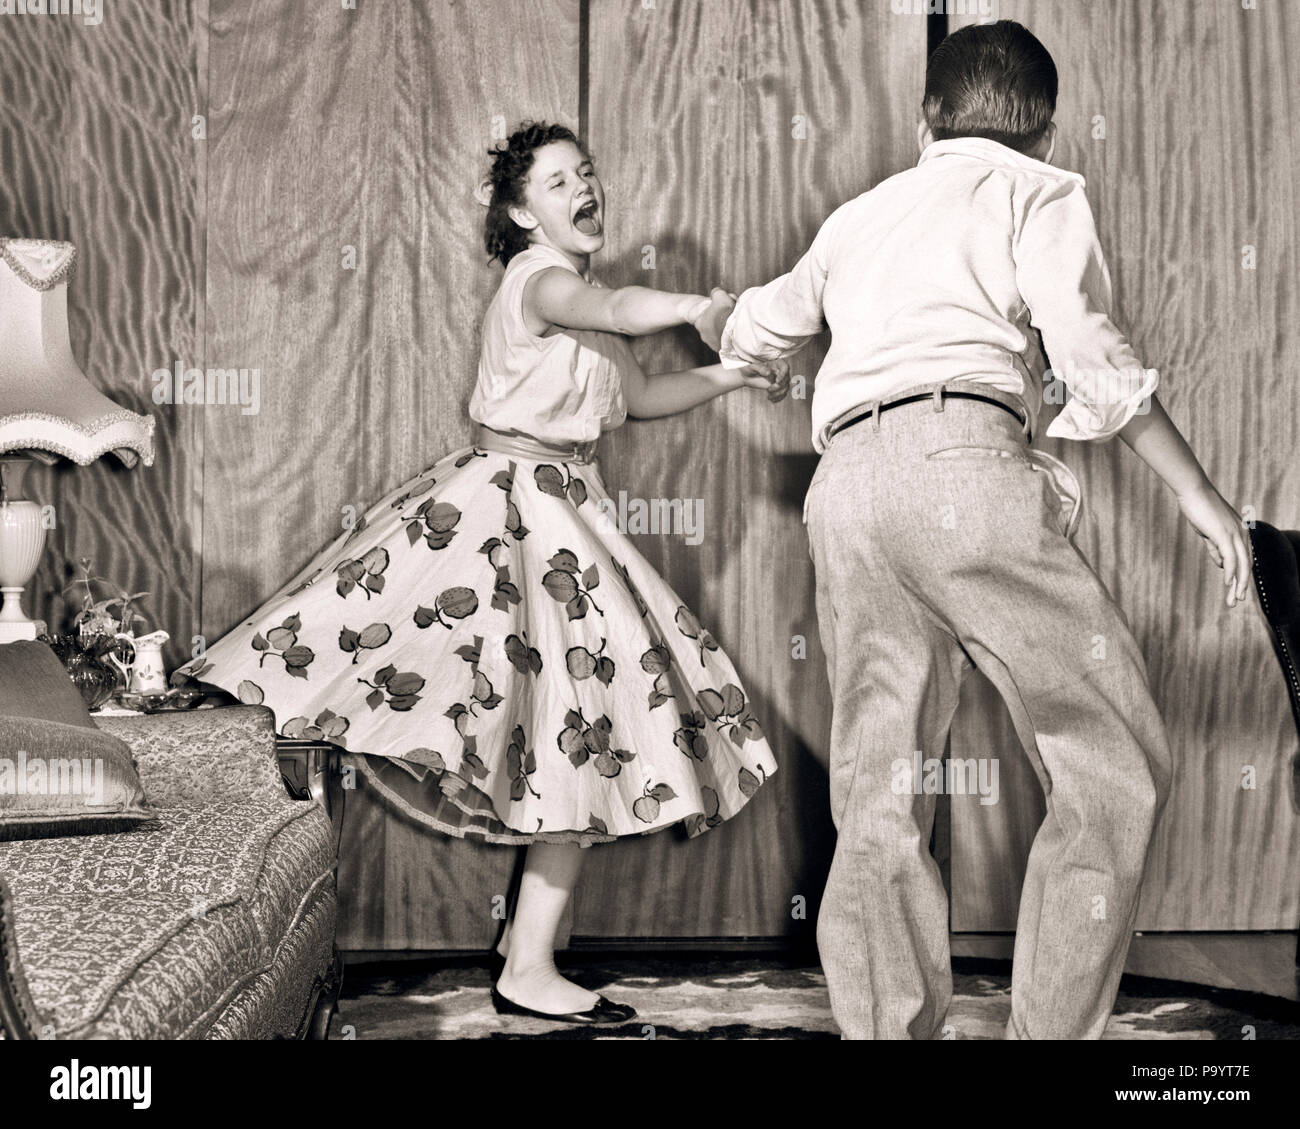 1950s TEENAGE COUPLE BOY AND GIRL DANCING ROCK AND ROLL JITTERBUG - d184 DEB001 HARS HOME LIFE FRIENDSHIP FULL-LENGTH ADOLESCENT PERSONS MALES TEENAGE GIRL TEENAGE BOY B&W JITTERBUG FREEDOM HAPPINESS AND EXCITEMENT RECREATION MOTION BLUR ESCAPE JOYFUL STYLISH TEENAGED DEB001 ROCK AND ROLL GROWTH JITTERBUGGING JUVENILES TOGETHERNESS BLACK AND WHITE CAUCASIAN ETHNICITY OLD FASHIONED - Stock Image